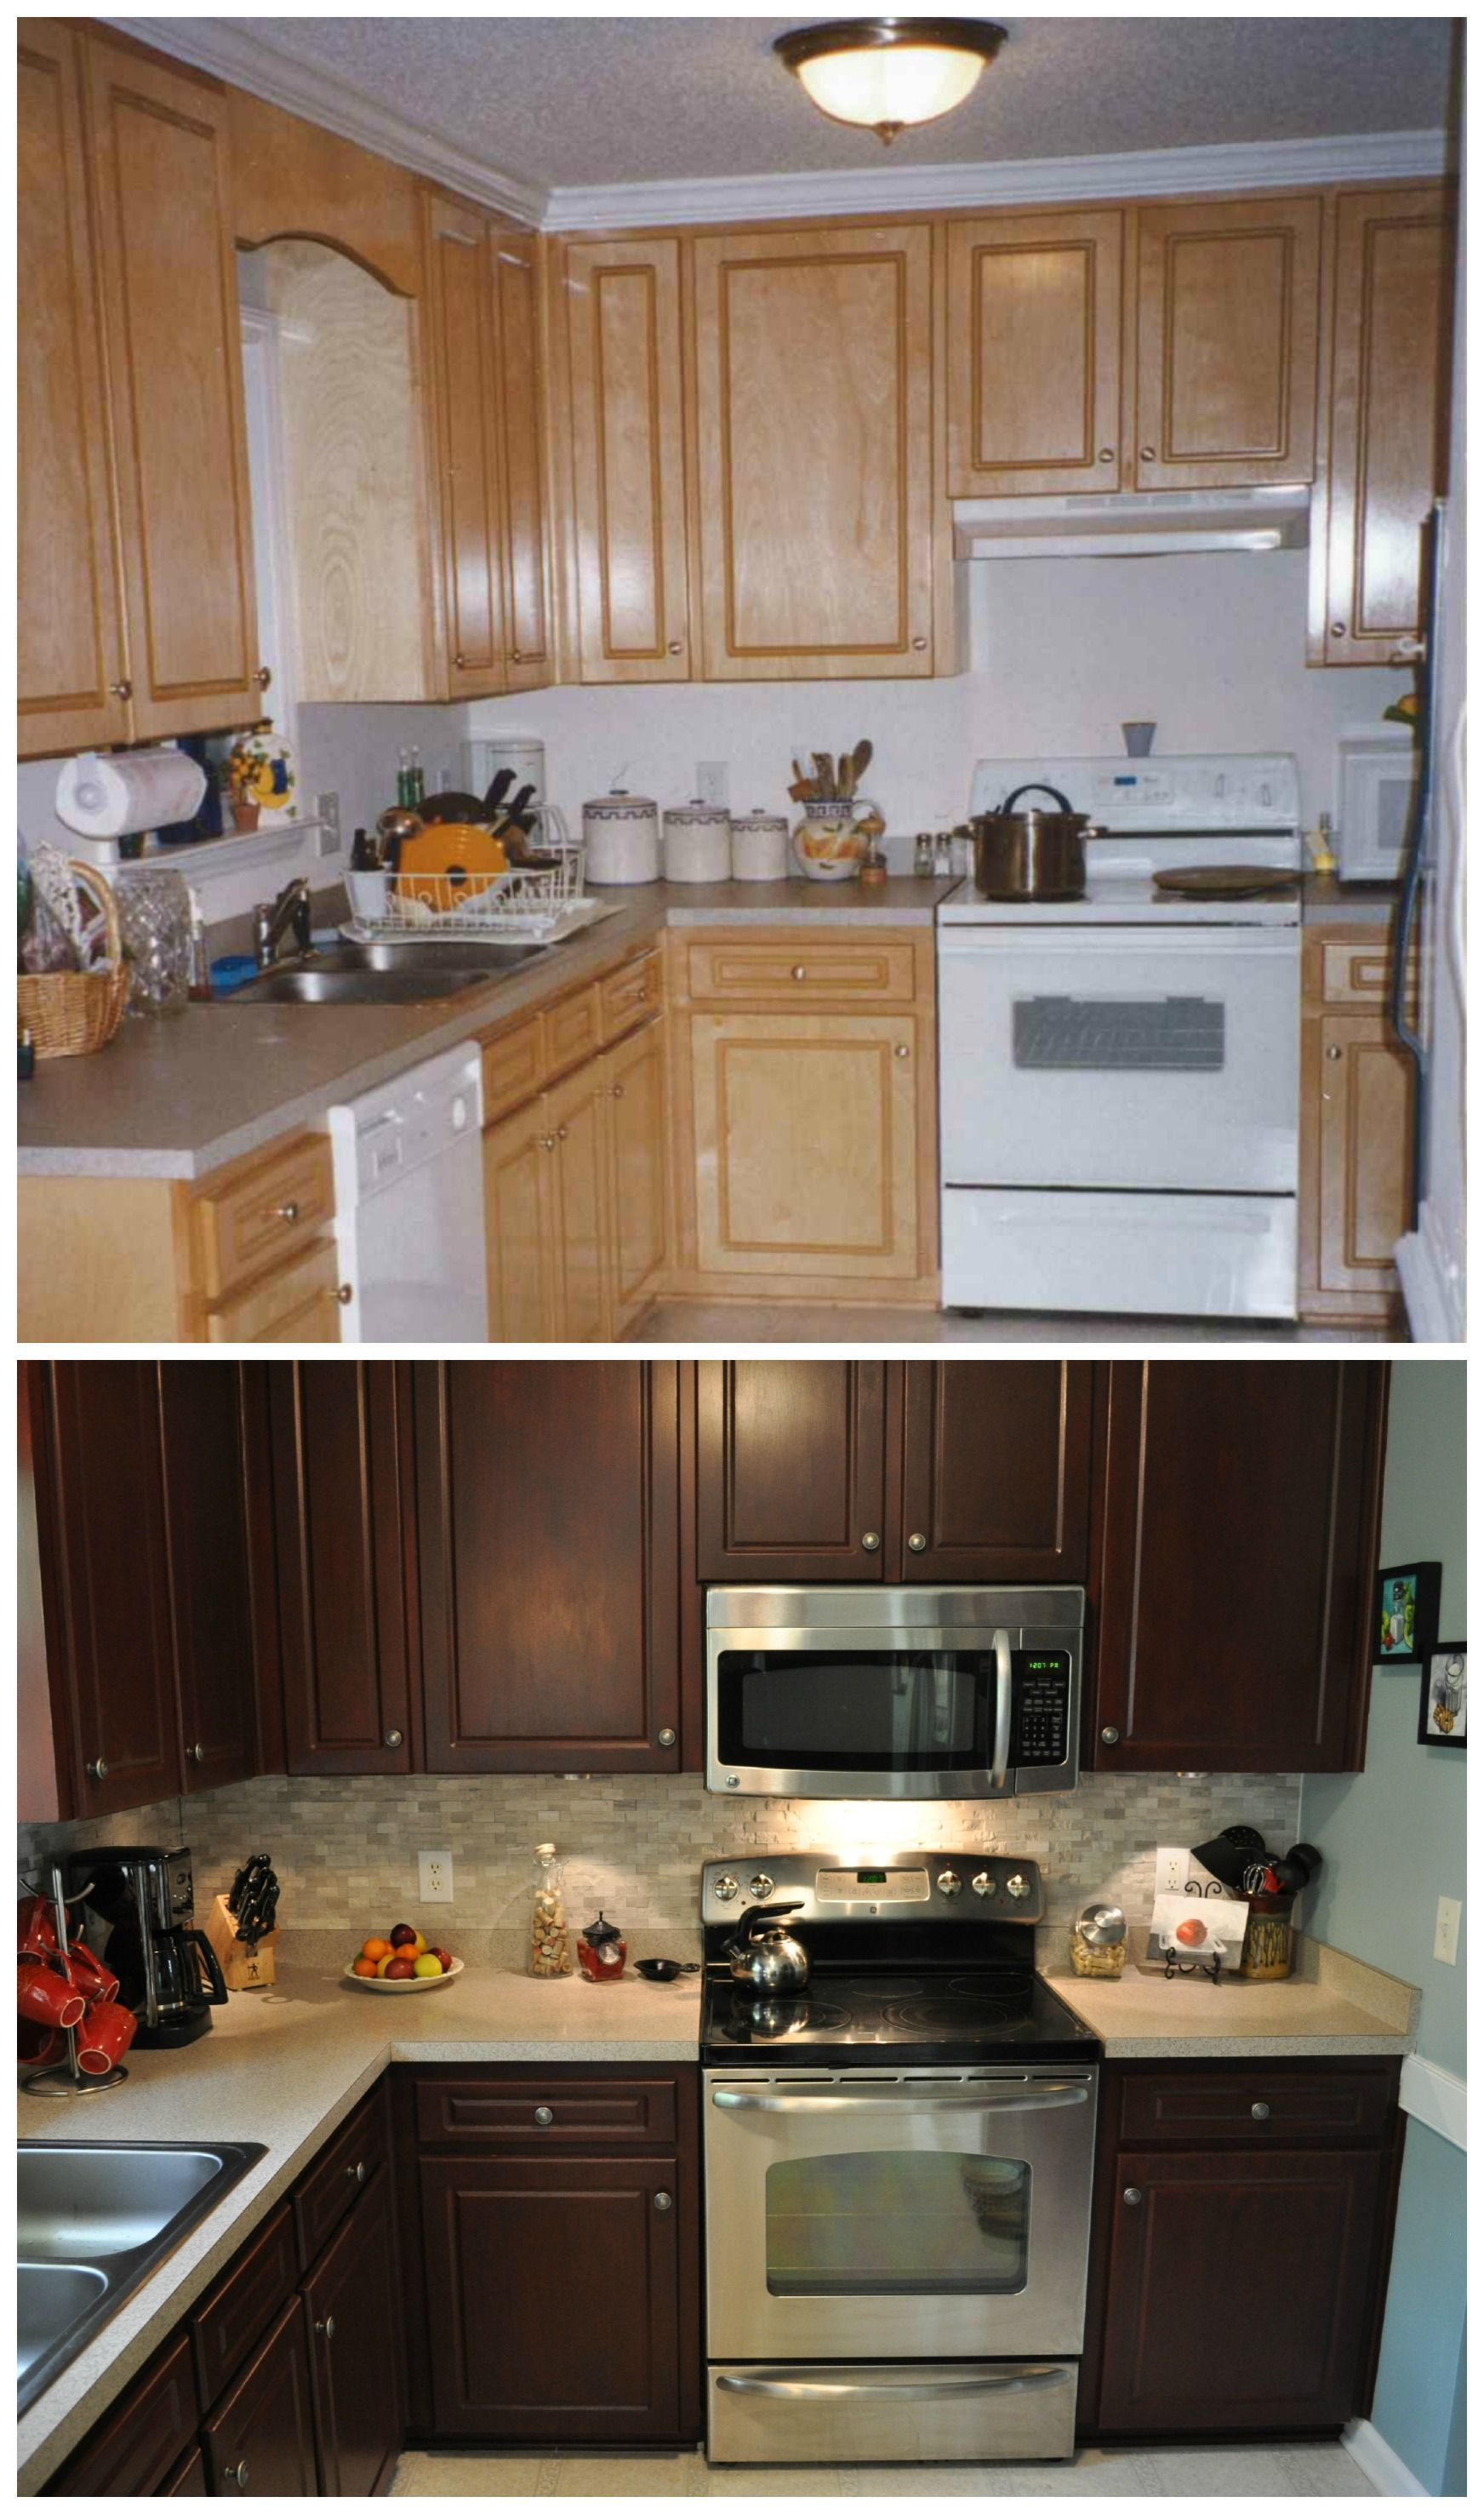 Before And After Photos Of My Kitchen I Used The Rust Oleum Cabinet Transformations Product Col Stained Kitchen Cabinets Kitchen Design Kitchen Diy Makeover